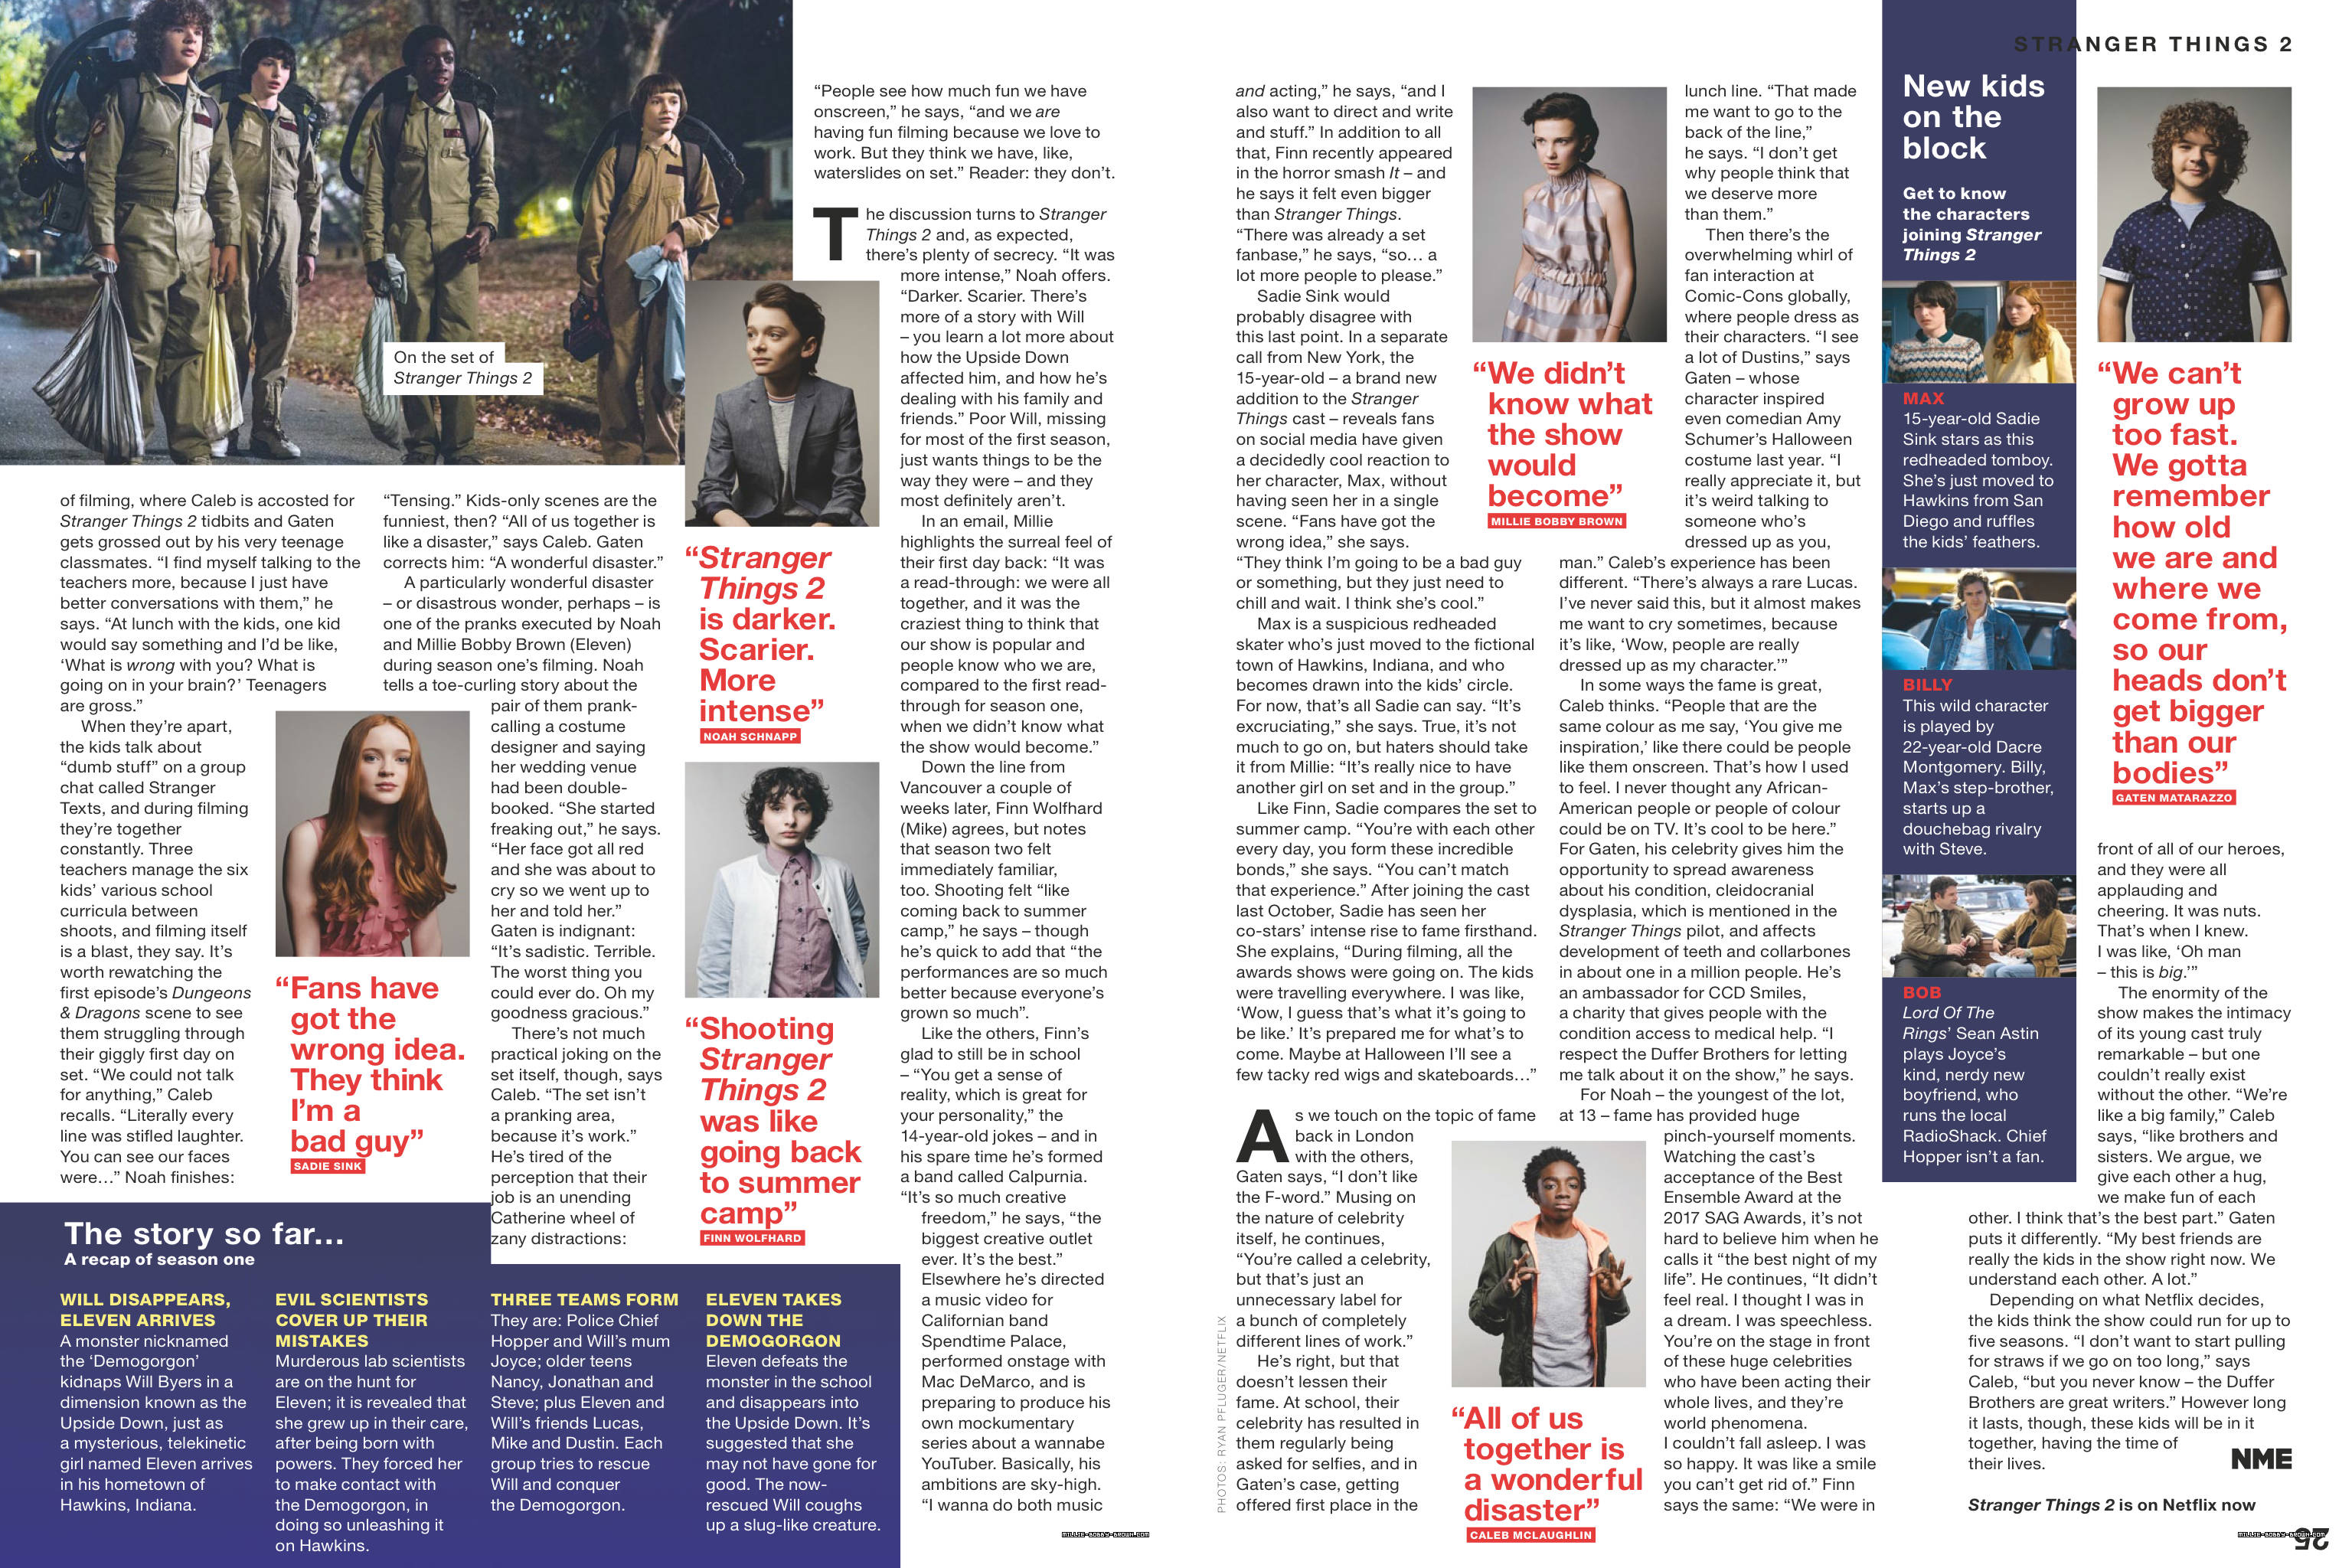 Stranger Things in NME Magazine - 2017 [2]